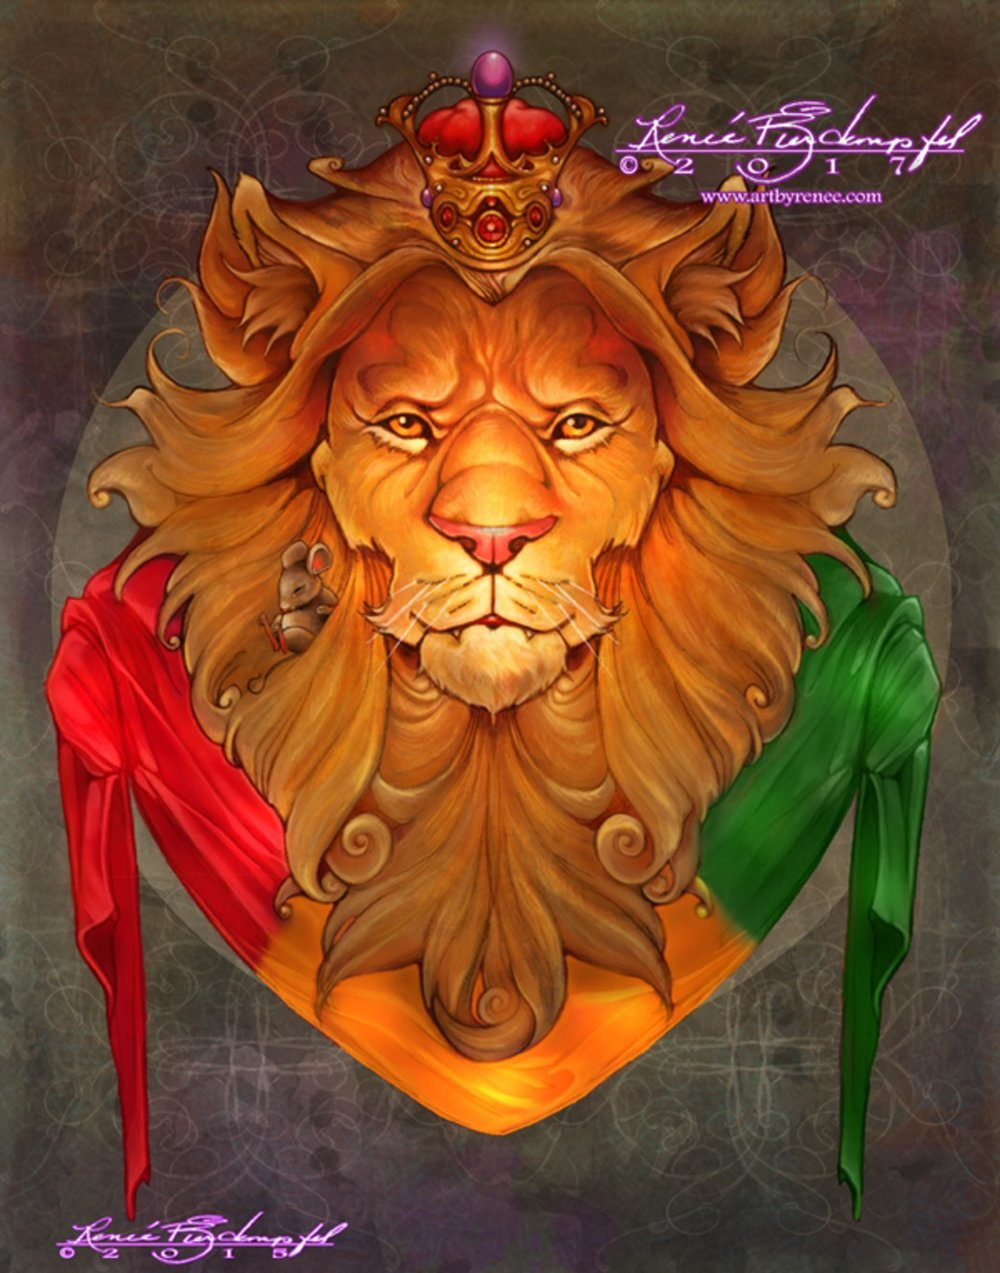 King of Beasts Reggae